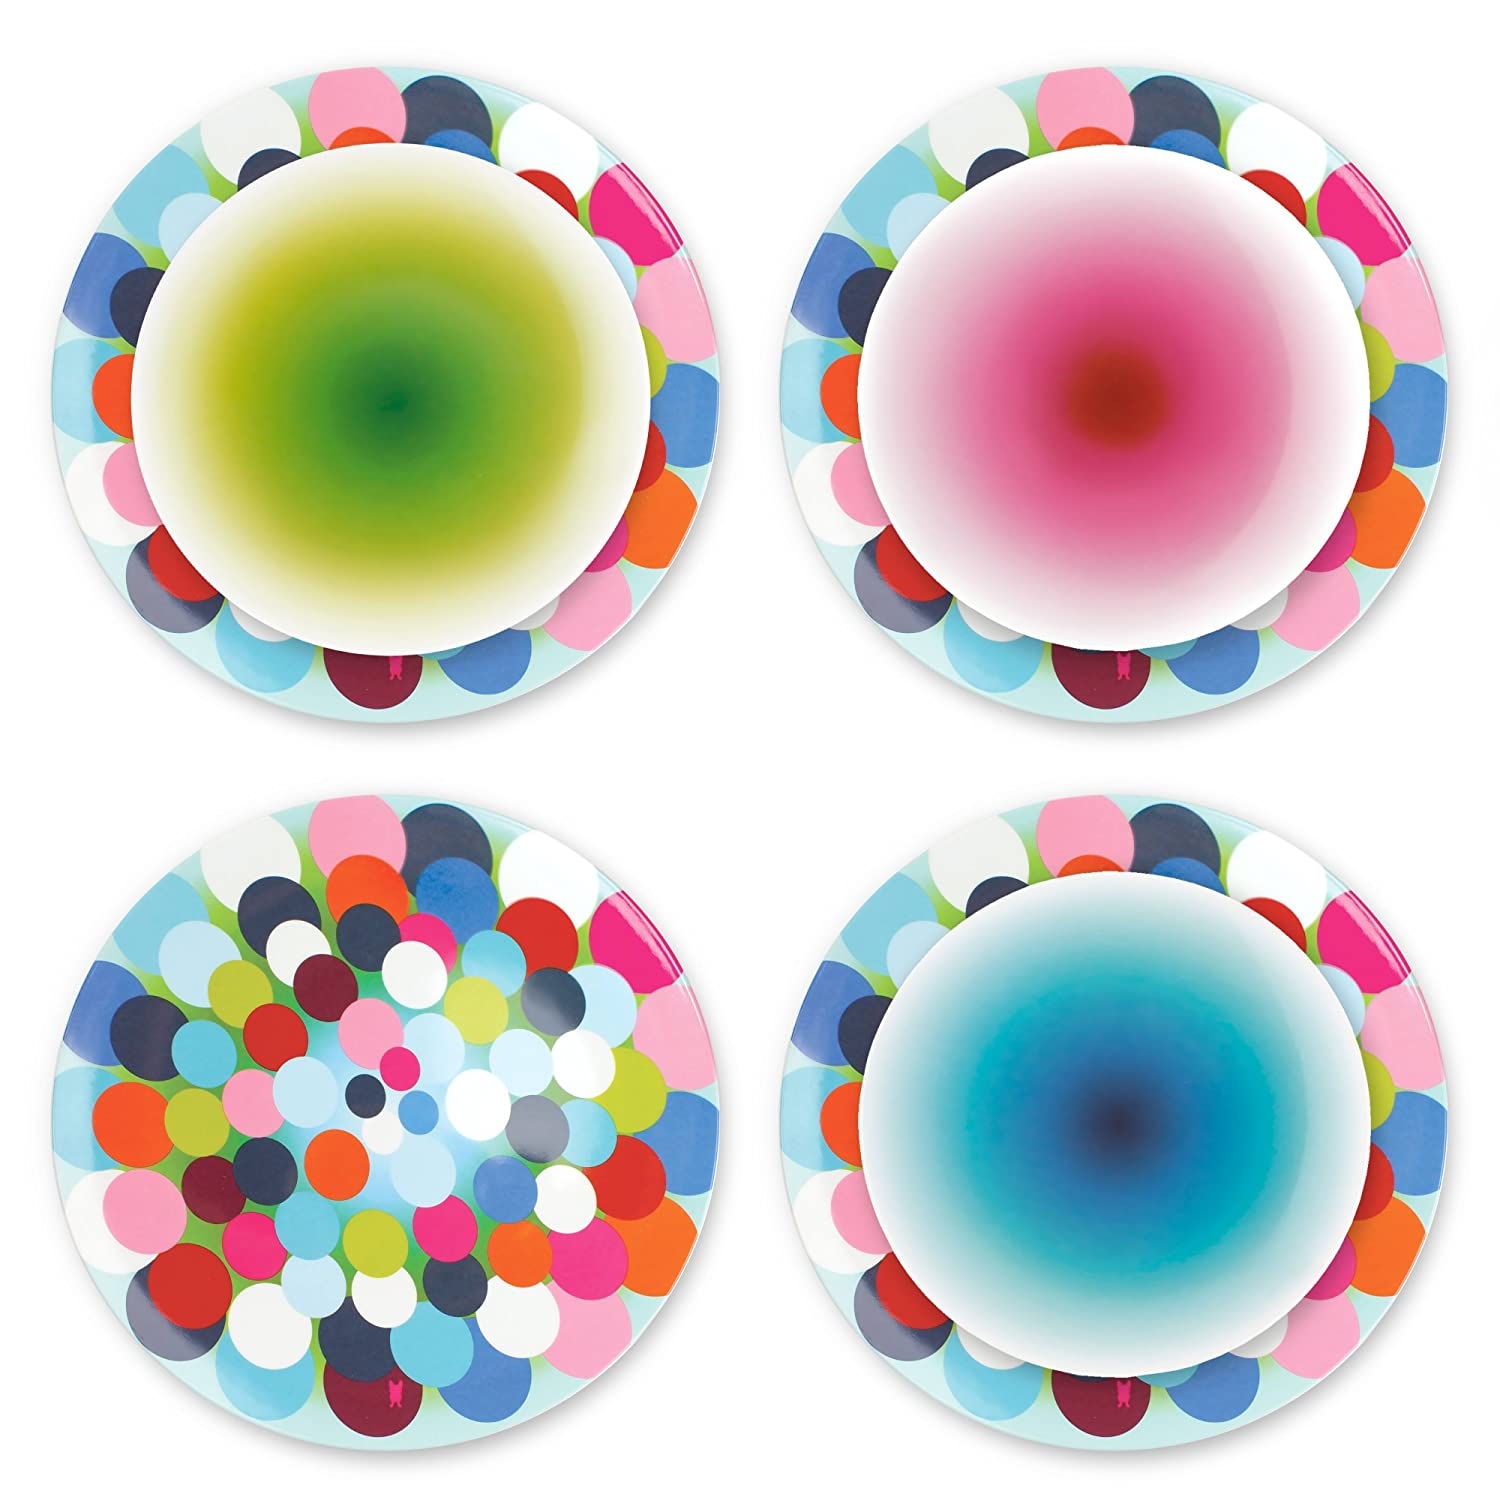 Dish Serving Platter Melamine Dinnerware Collection Ombre French Bull 7 Appetizer Plate Set of 4